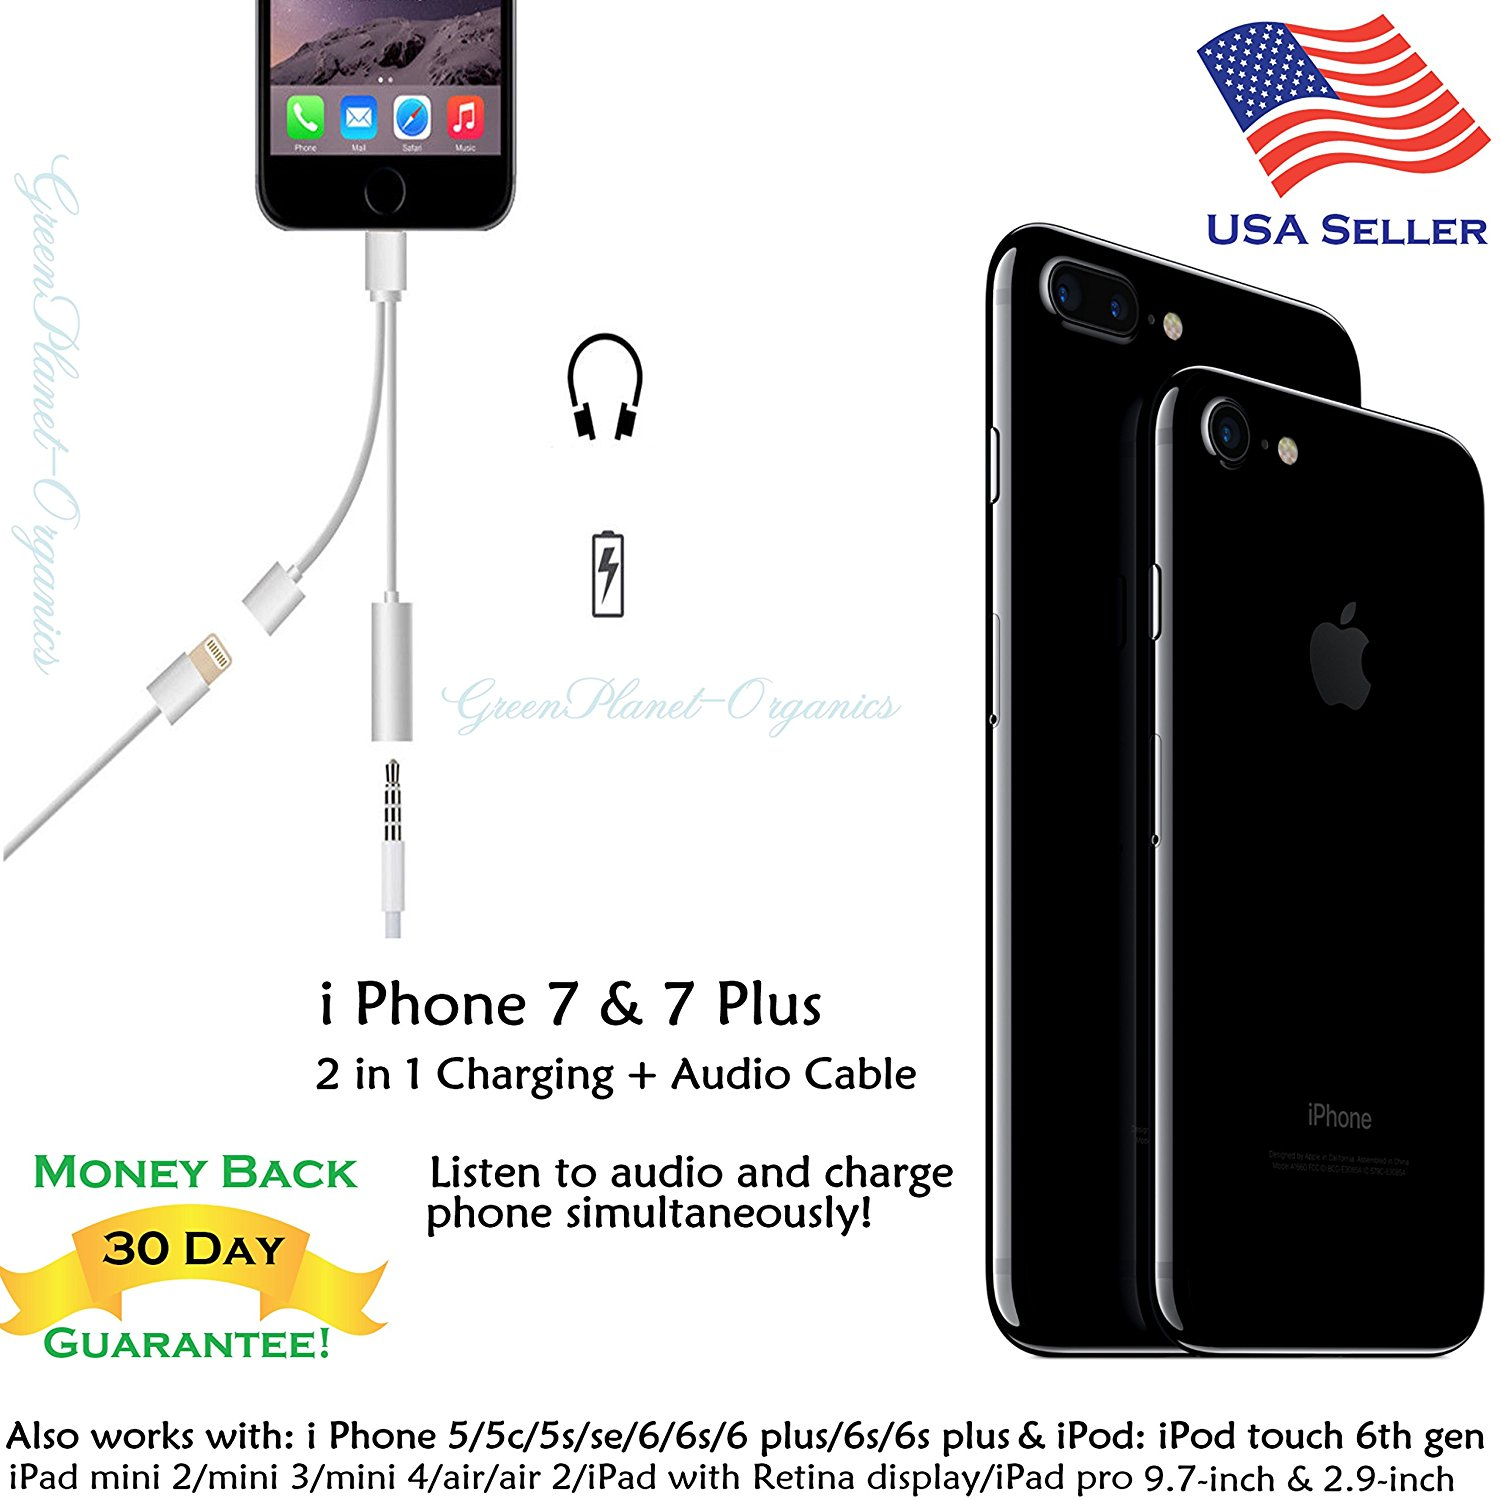 iPhone 7 & iPhone 7 Plus Two In One 3.5 MM Audio + USB Charging Cable (Listen to Audio & Charge Phone Simultaneously) Charge from Any USB Power Source Including Power Banks